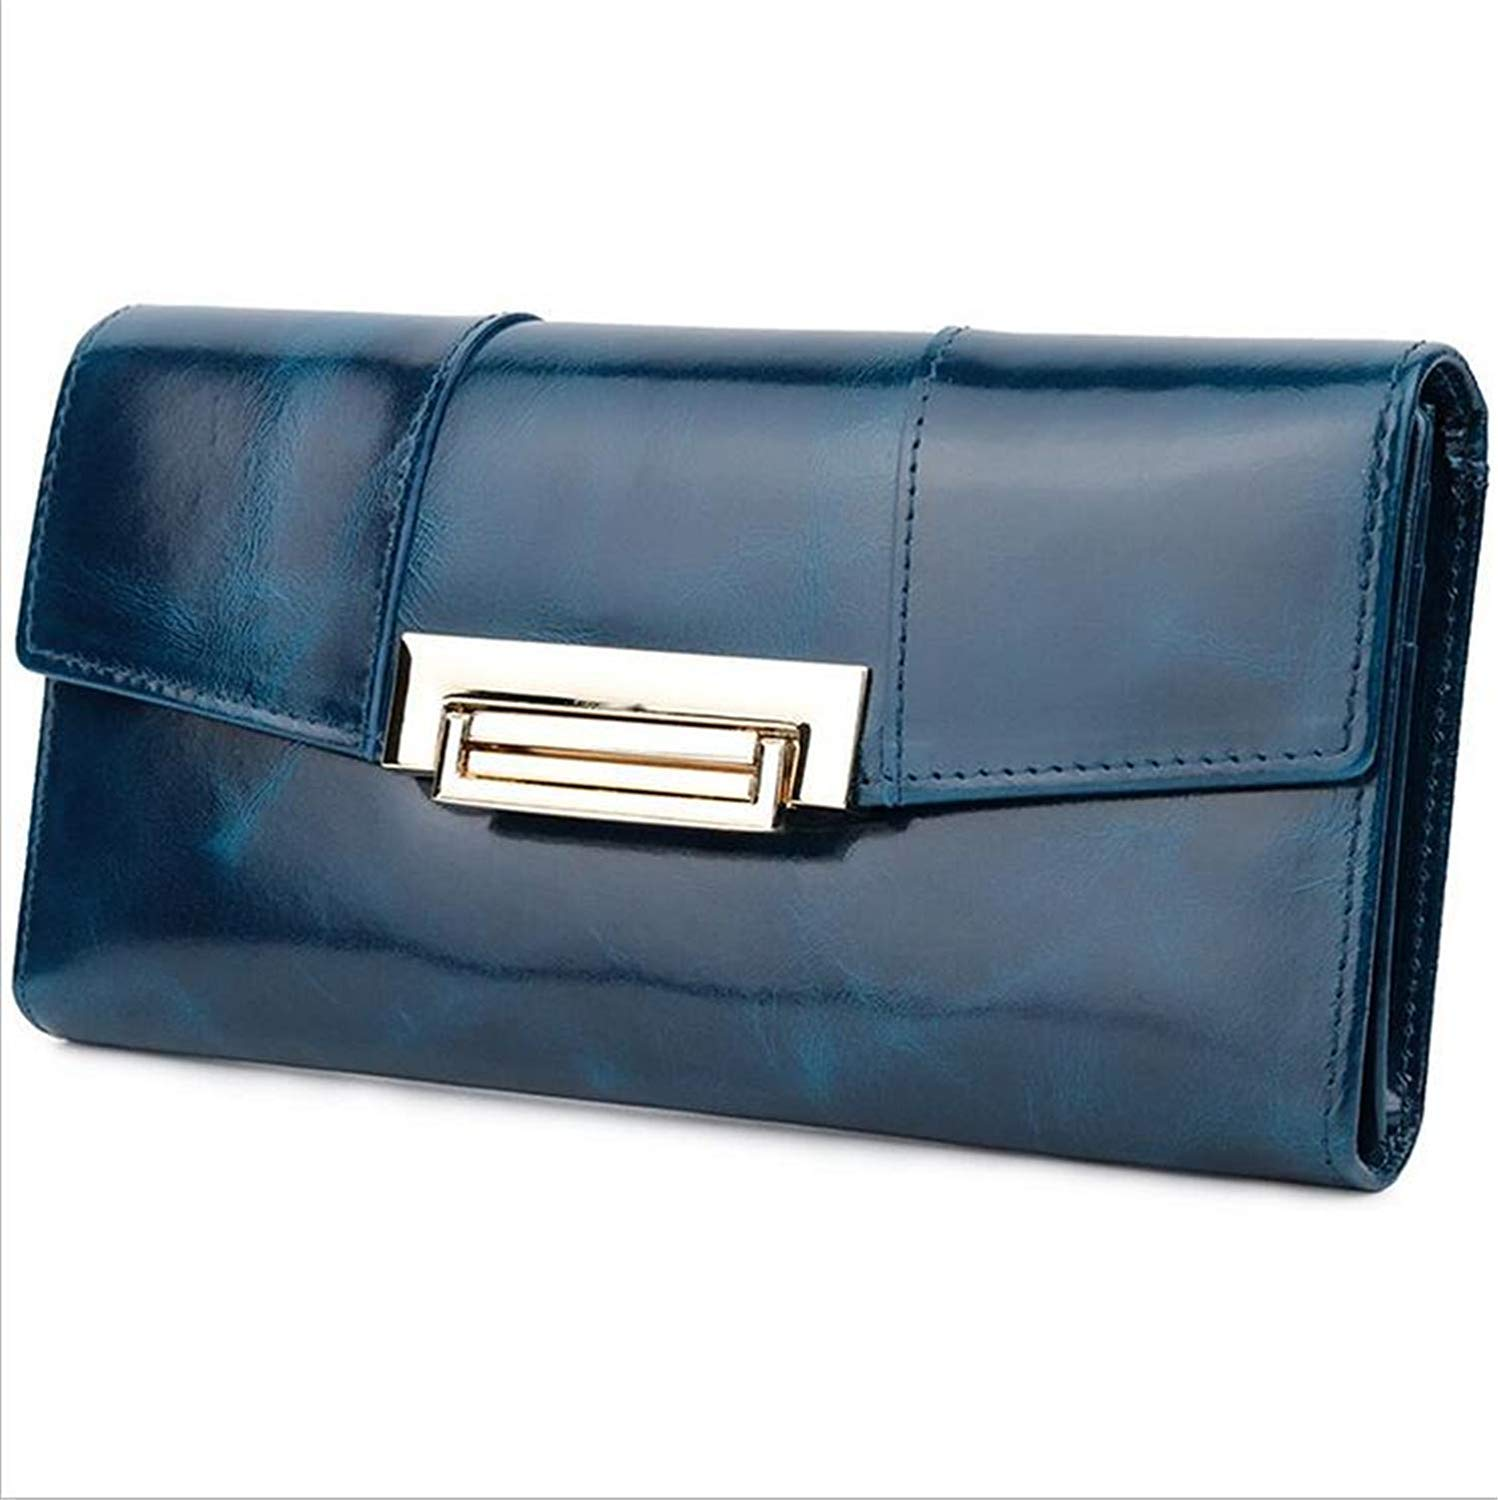 bluee Huasen Evening Bag Women Wallet Oil Waxed Cowhide Leather RFID Blocking Large Capacity Luxury Purse Clutch Wallet Muti Card Slot Perfect for Female Gift Party Handbag (color   Red)